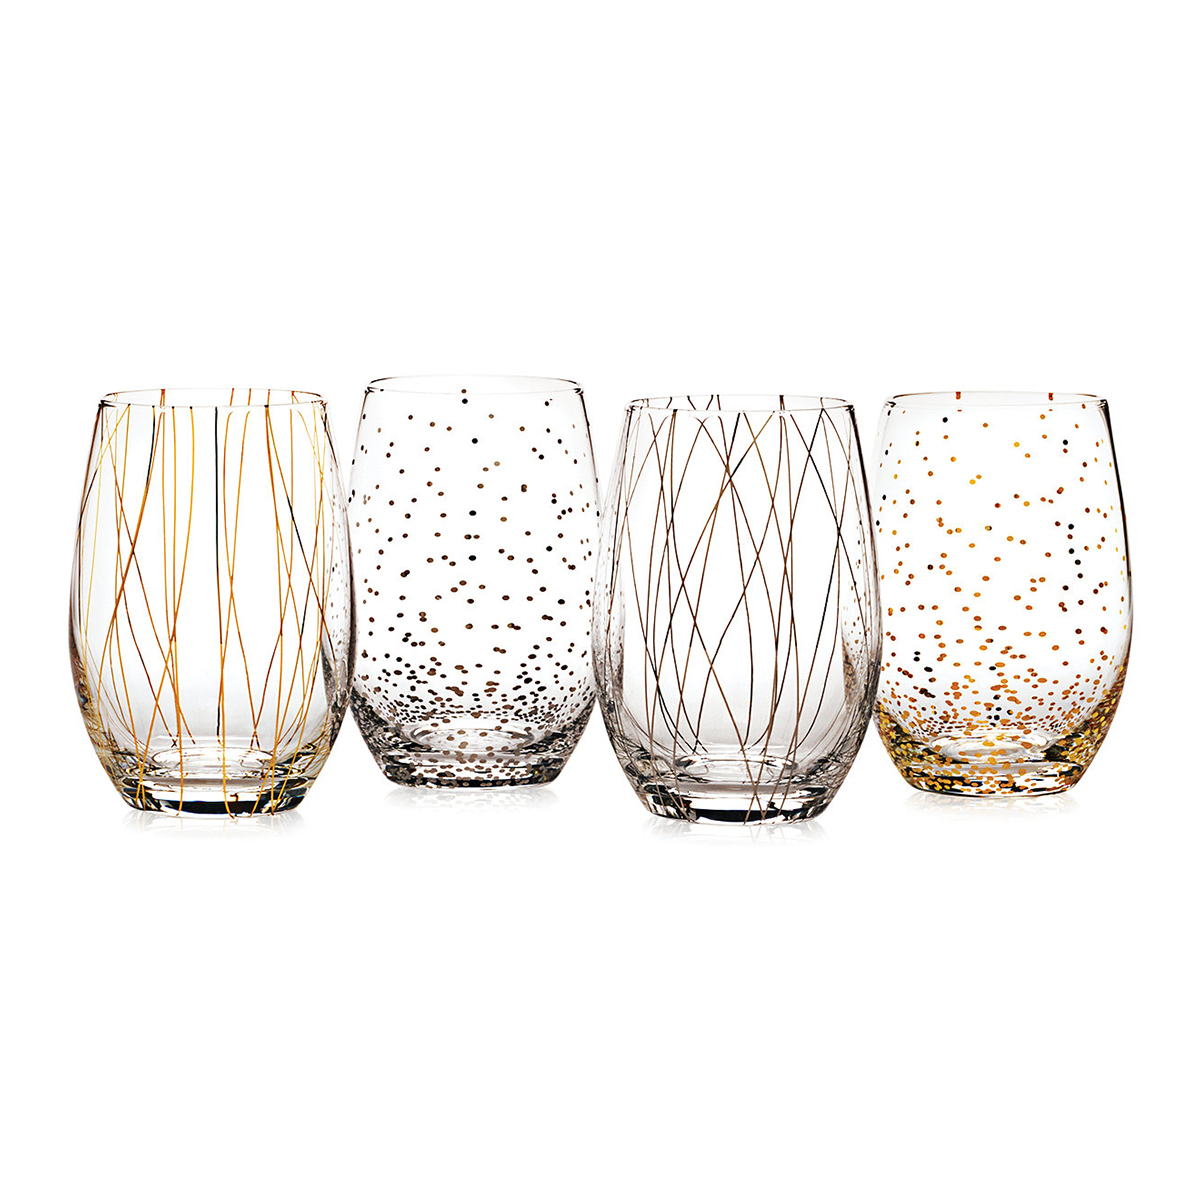 Wine glasses with colorful striped and polka-dot designs photo